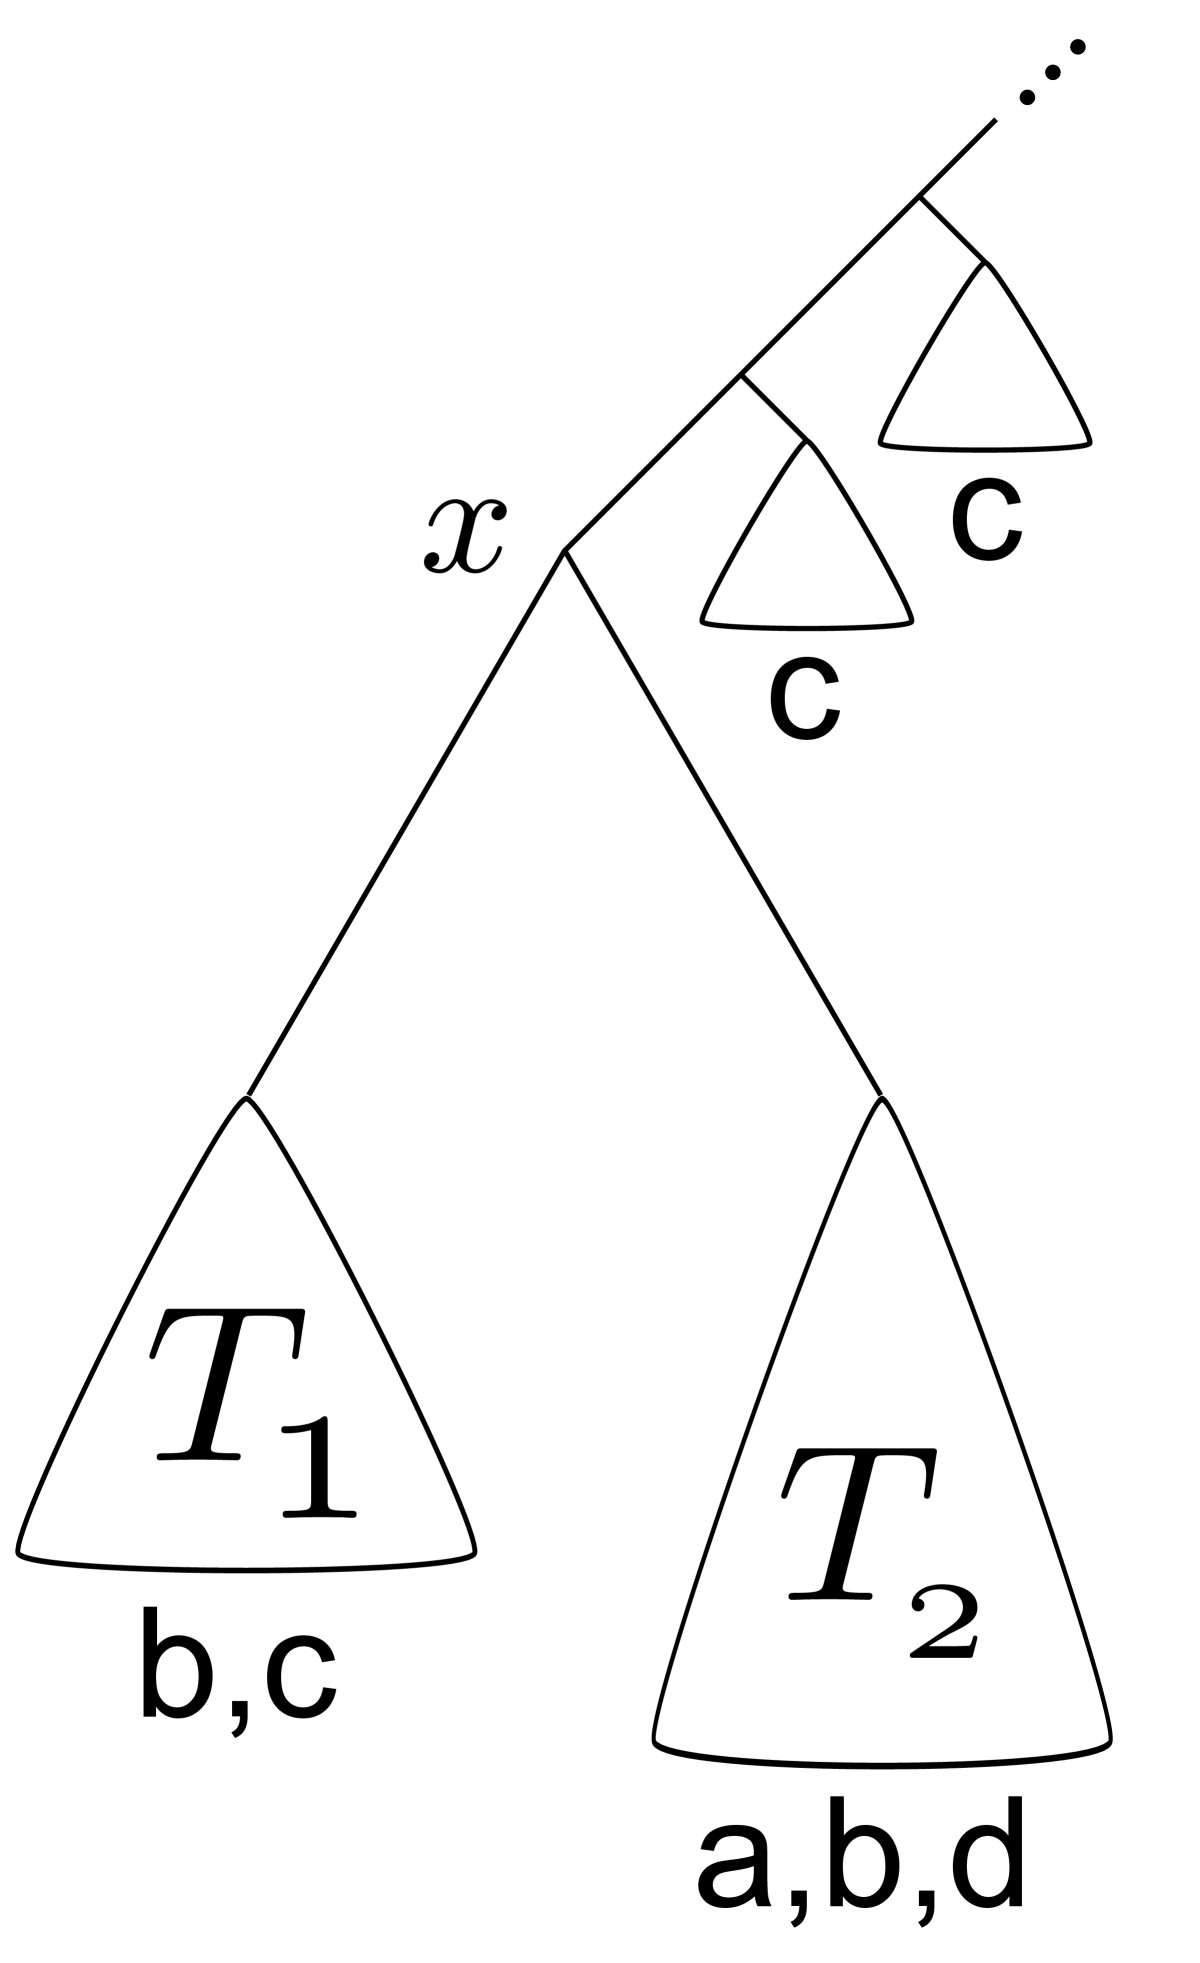 https://static-content.springer.com/image/art%3A10.1186%2F1748-7188-7-8/MediaObjects/13015_2011_Article_148_Fig3_HTML.jpg